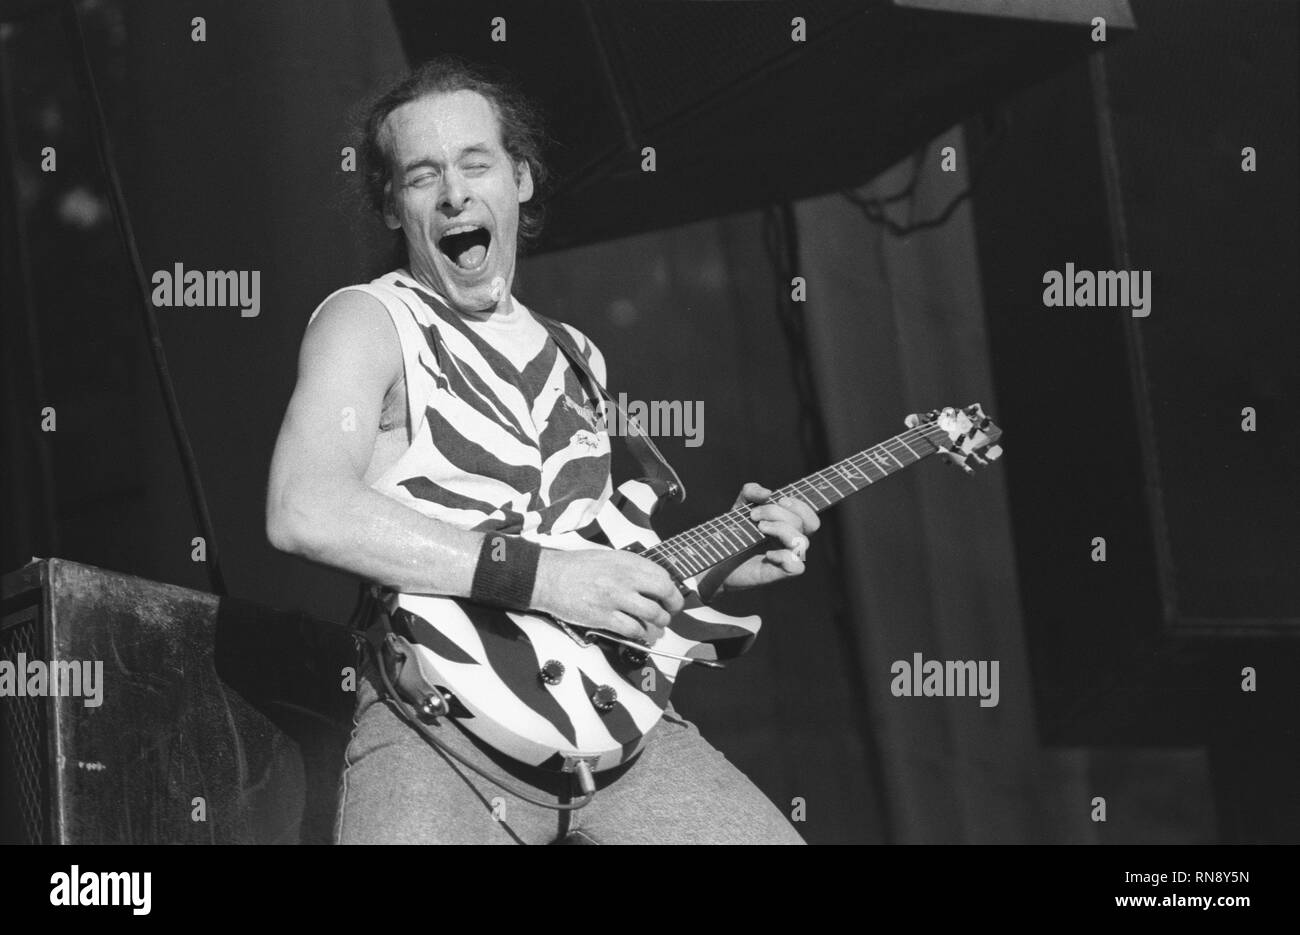 Damn Yankees guitarist Ted Nugent is shown performing on stage during a 'live' concert appearance. - Stock Image